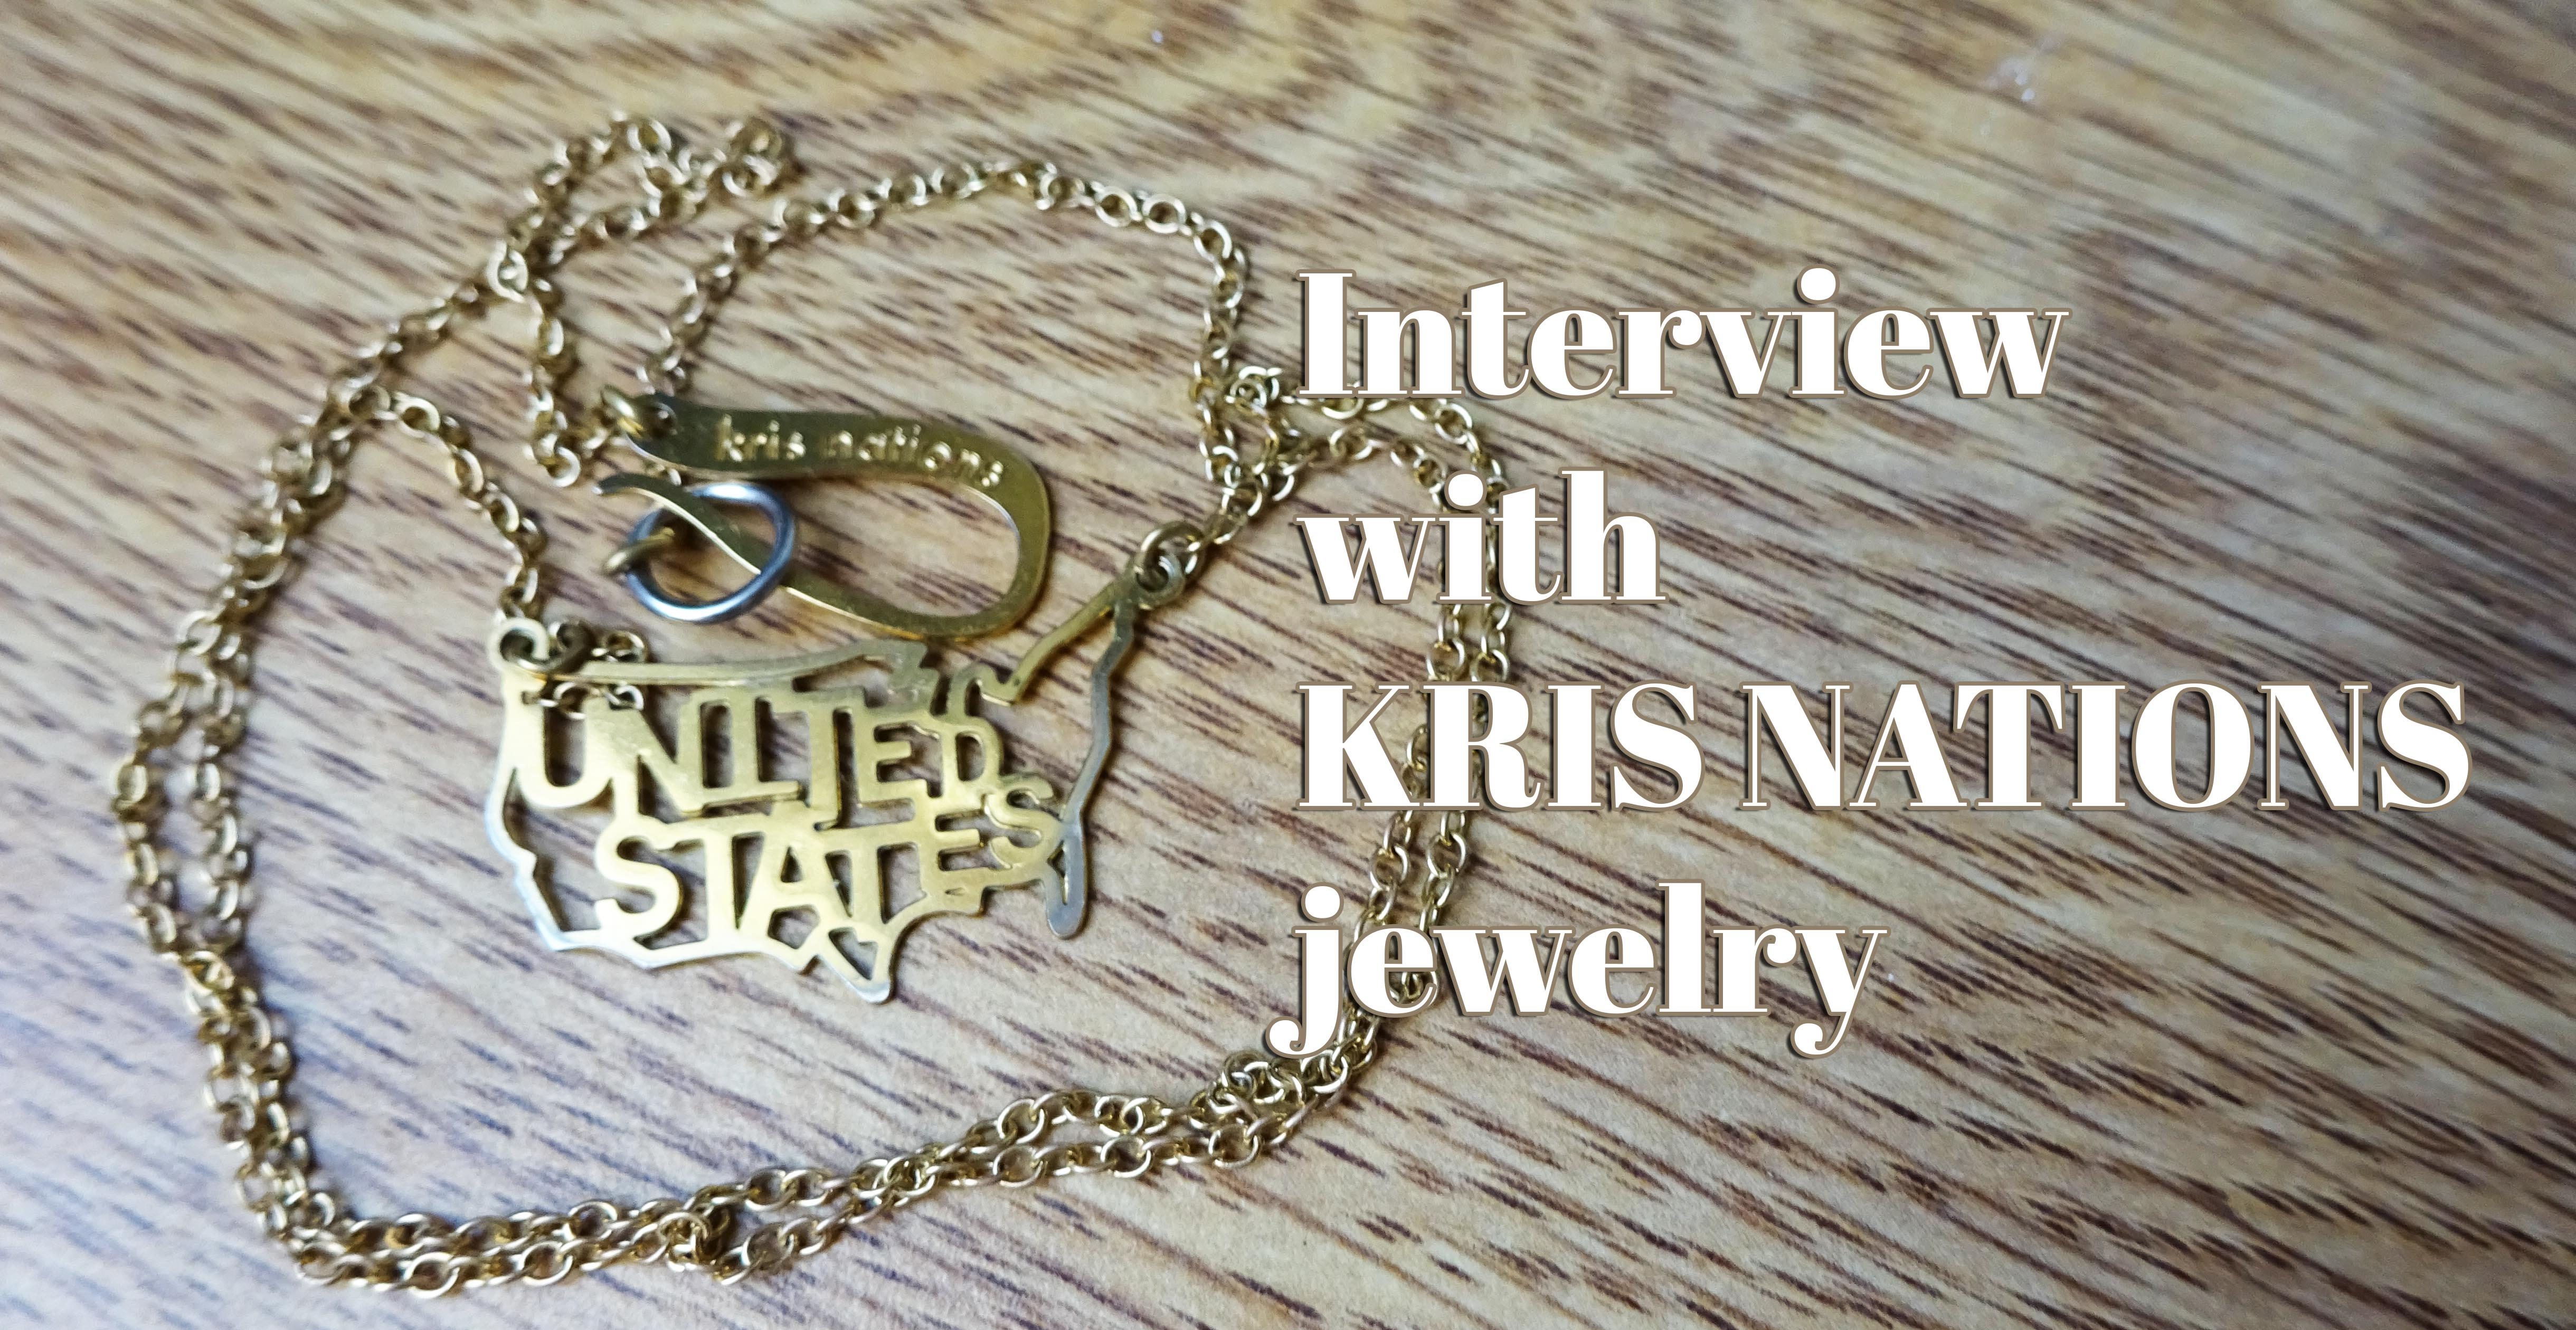 I love the united states kris nations interview blanket fort i love the united states kris nations interview aloadofball Images